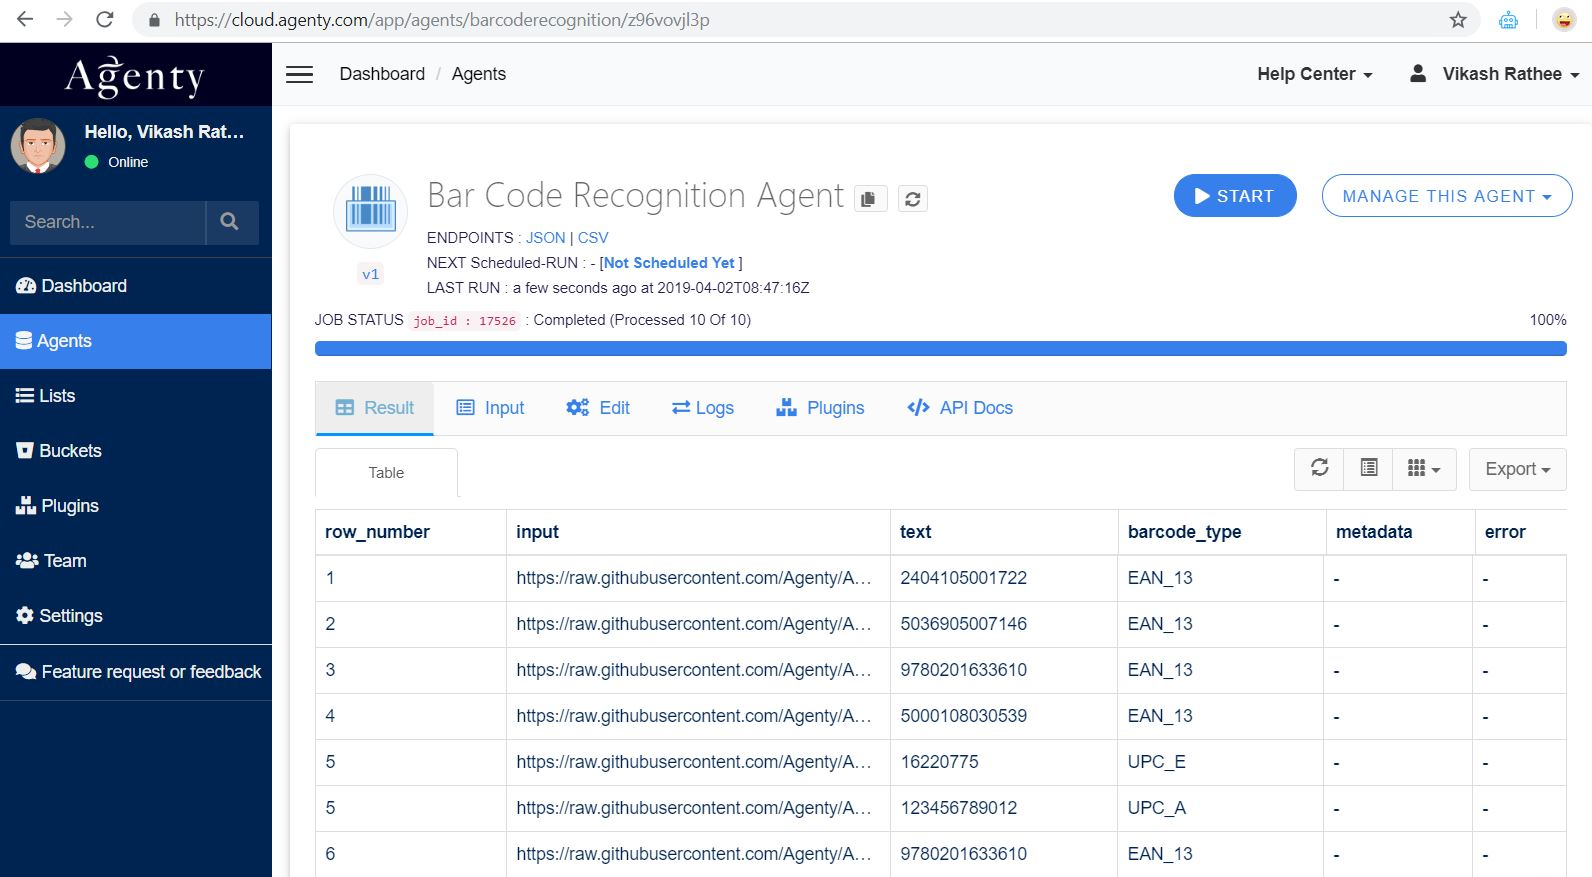 Barcode Recognition Agent